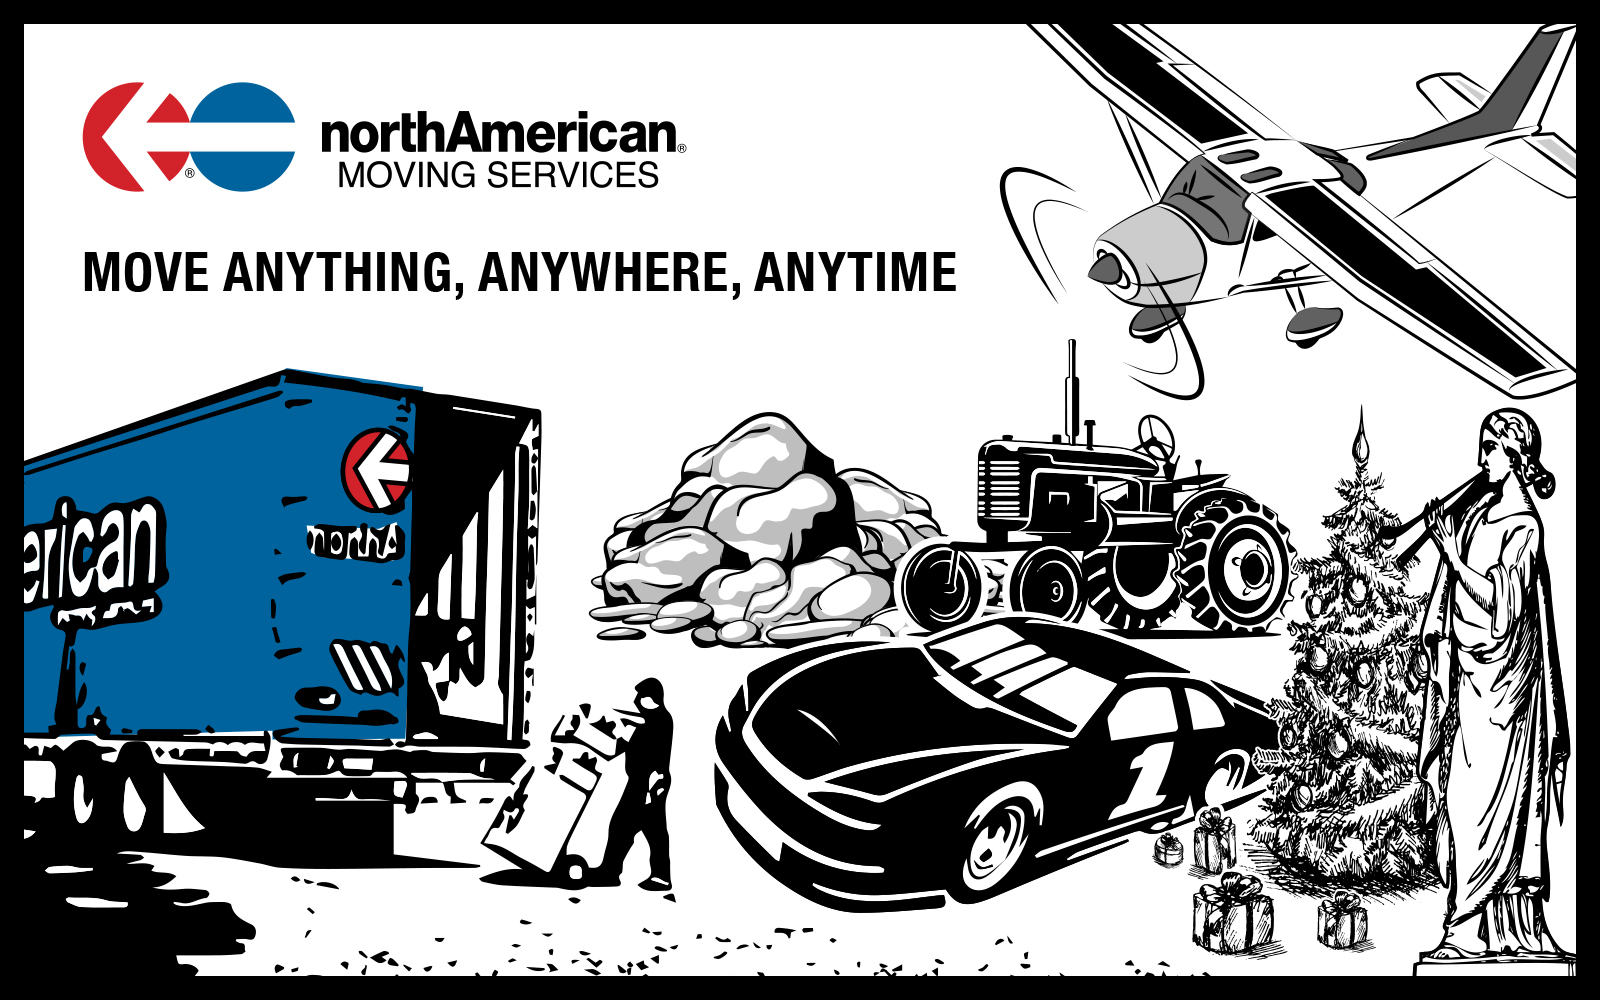 nA_Moving Odd Stuff_1600 x 1000_300dpi_w TAGLINE